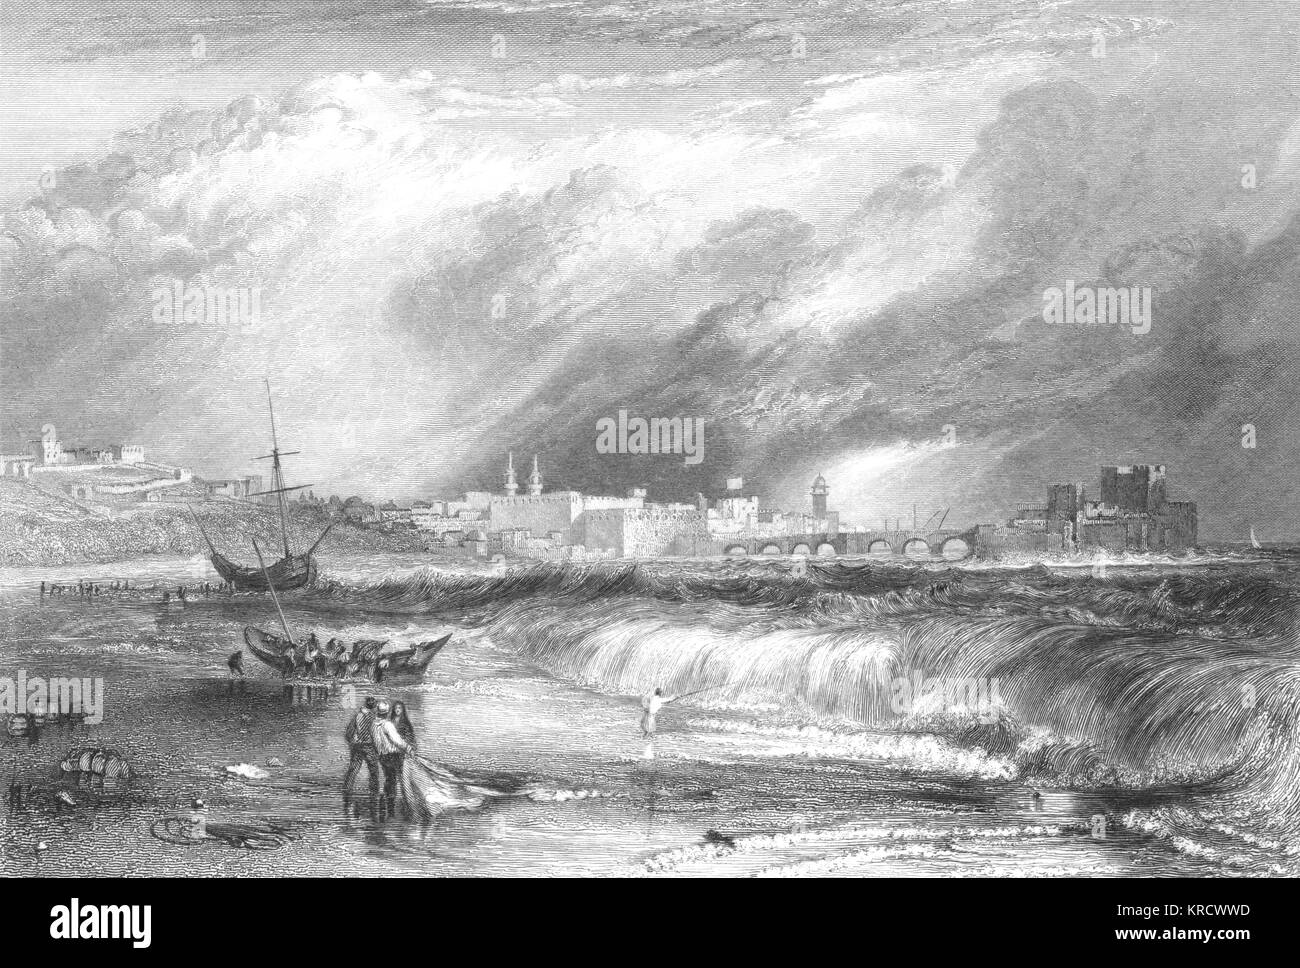 Sidon: on the sea shore Date: 1834 Stock Photo